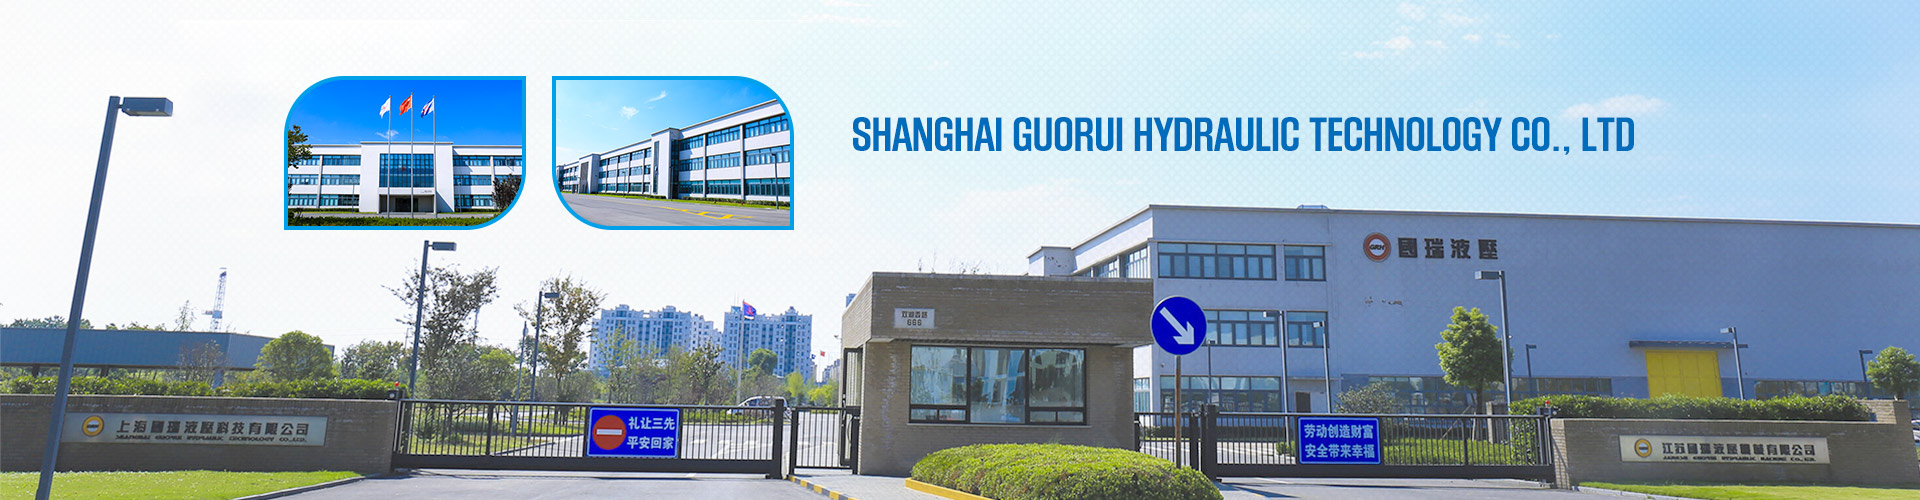 Shanghai Guorui Hidrolik Technology Co, Ltd